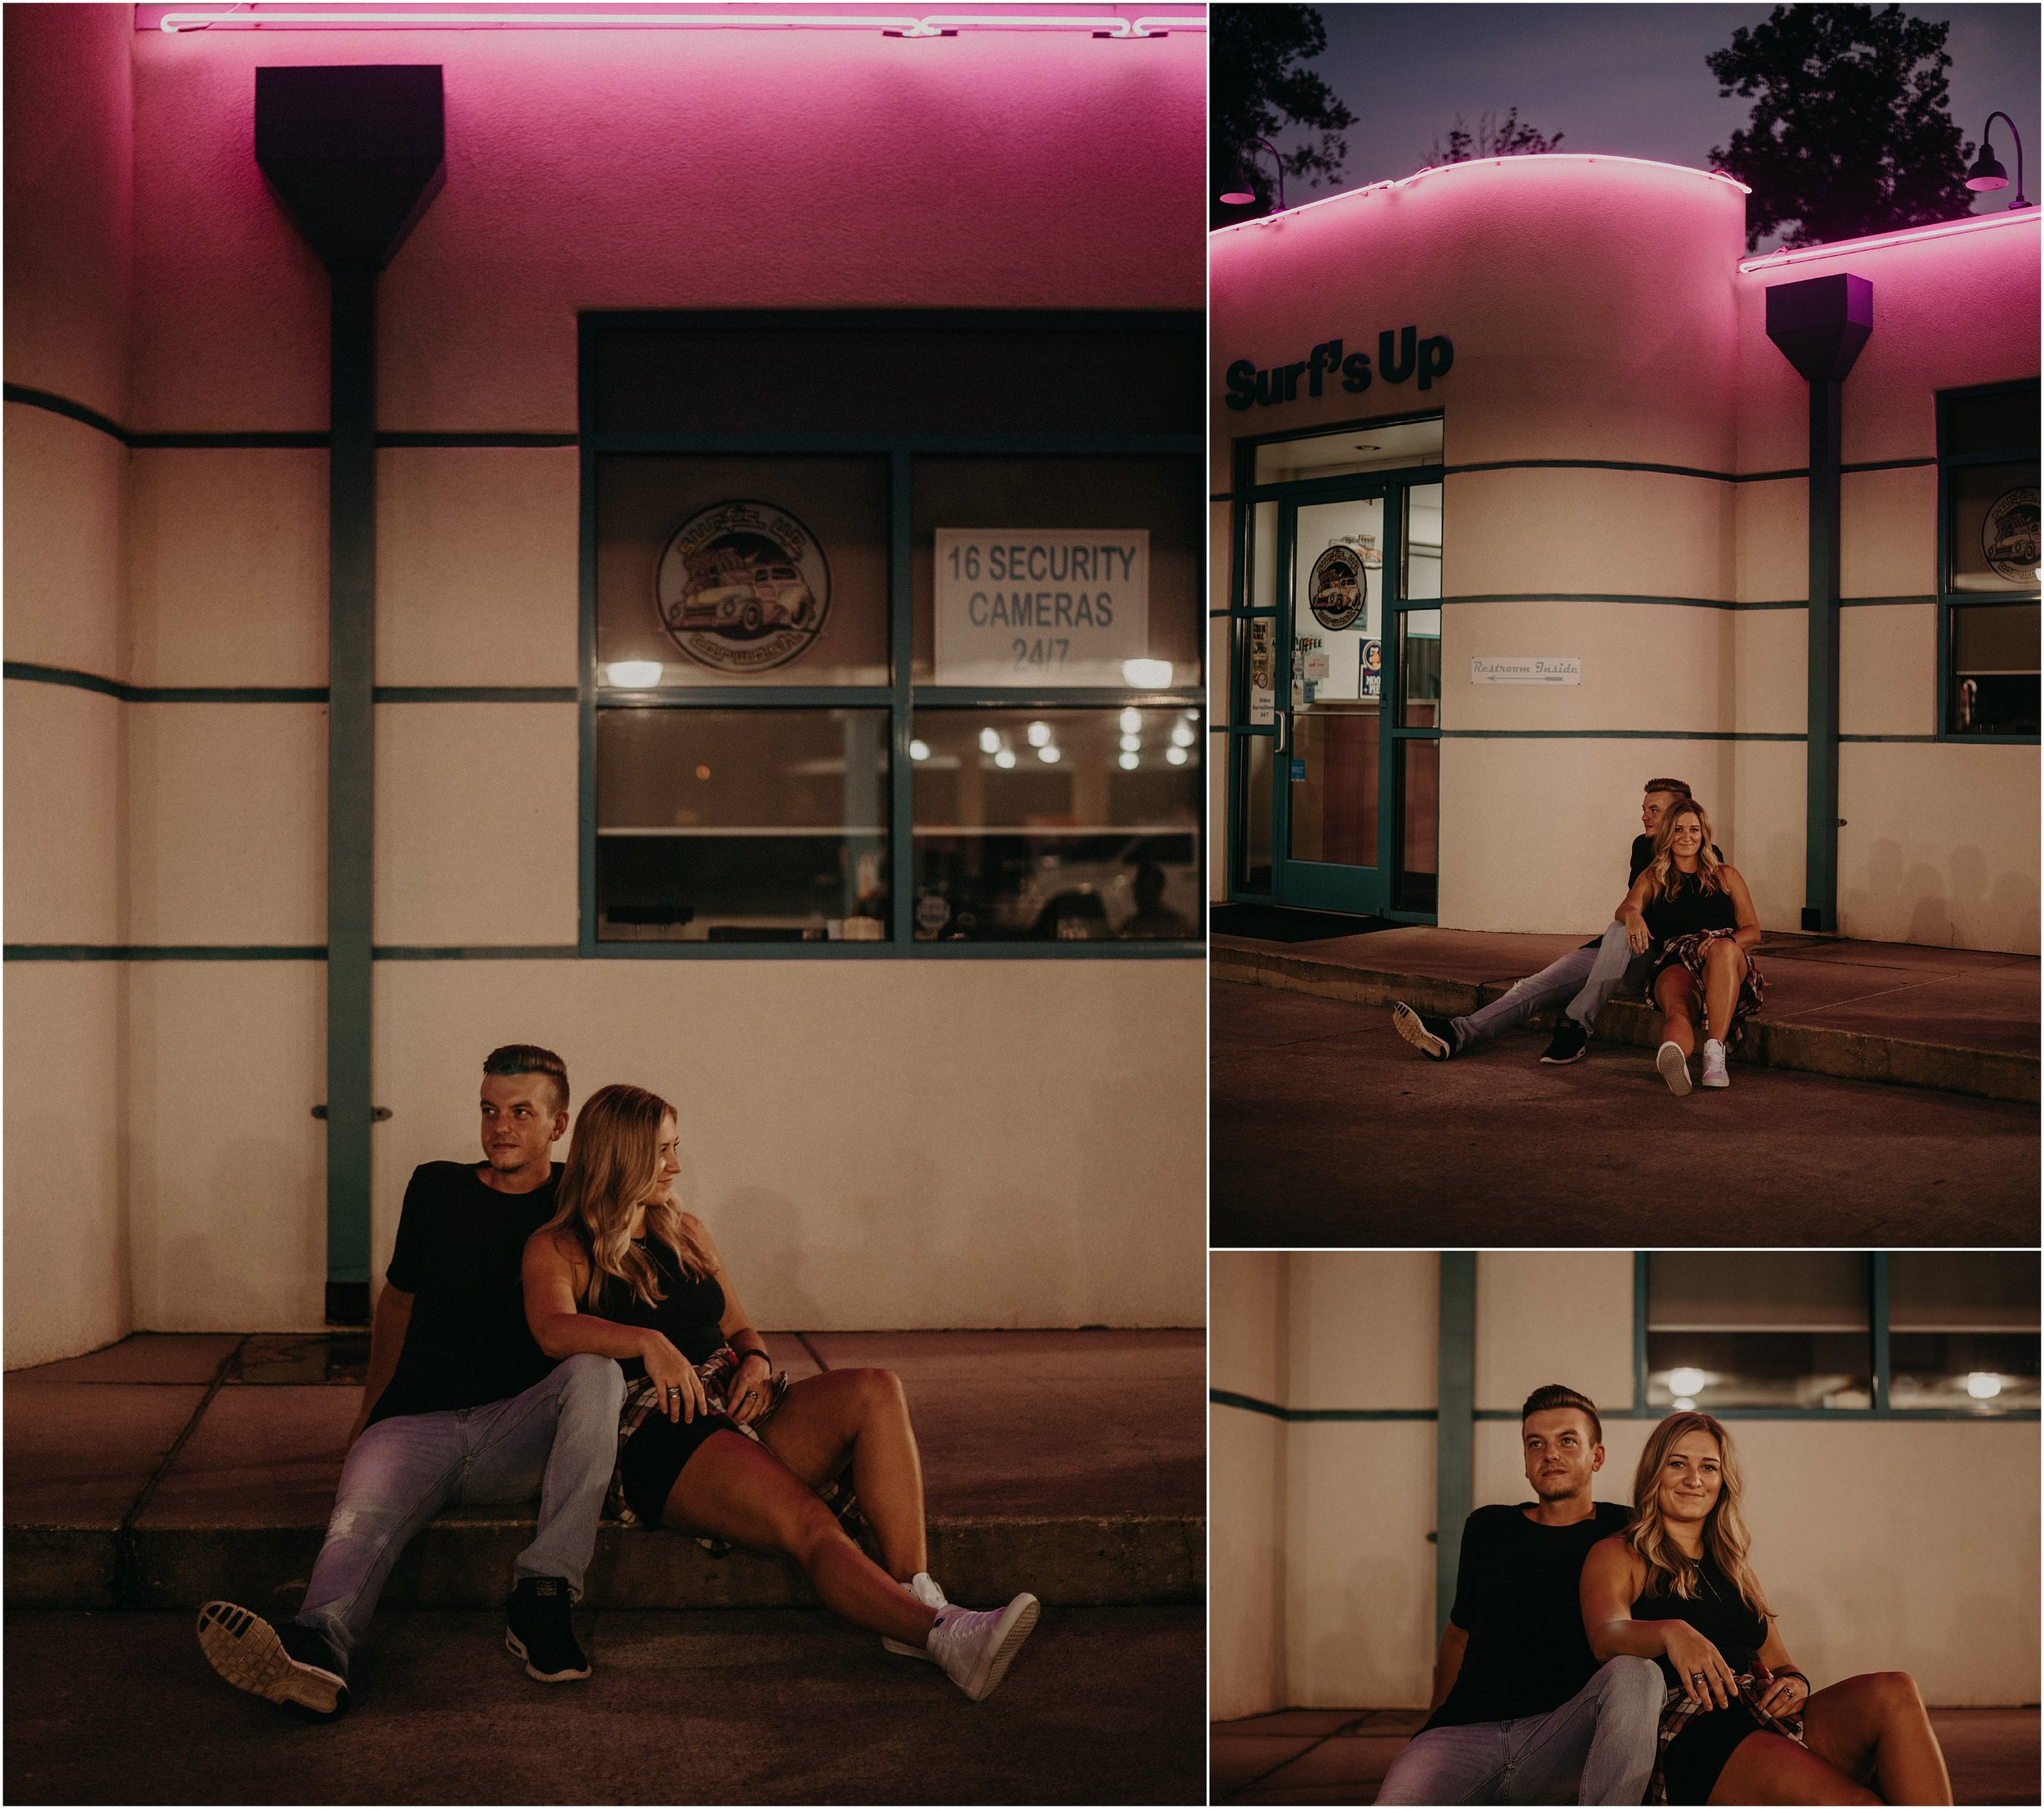 Couple hangs out in car wash parking lot in Chattanooga, Tennessee